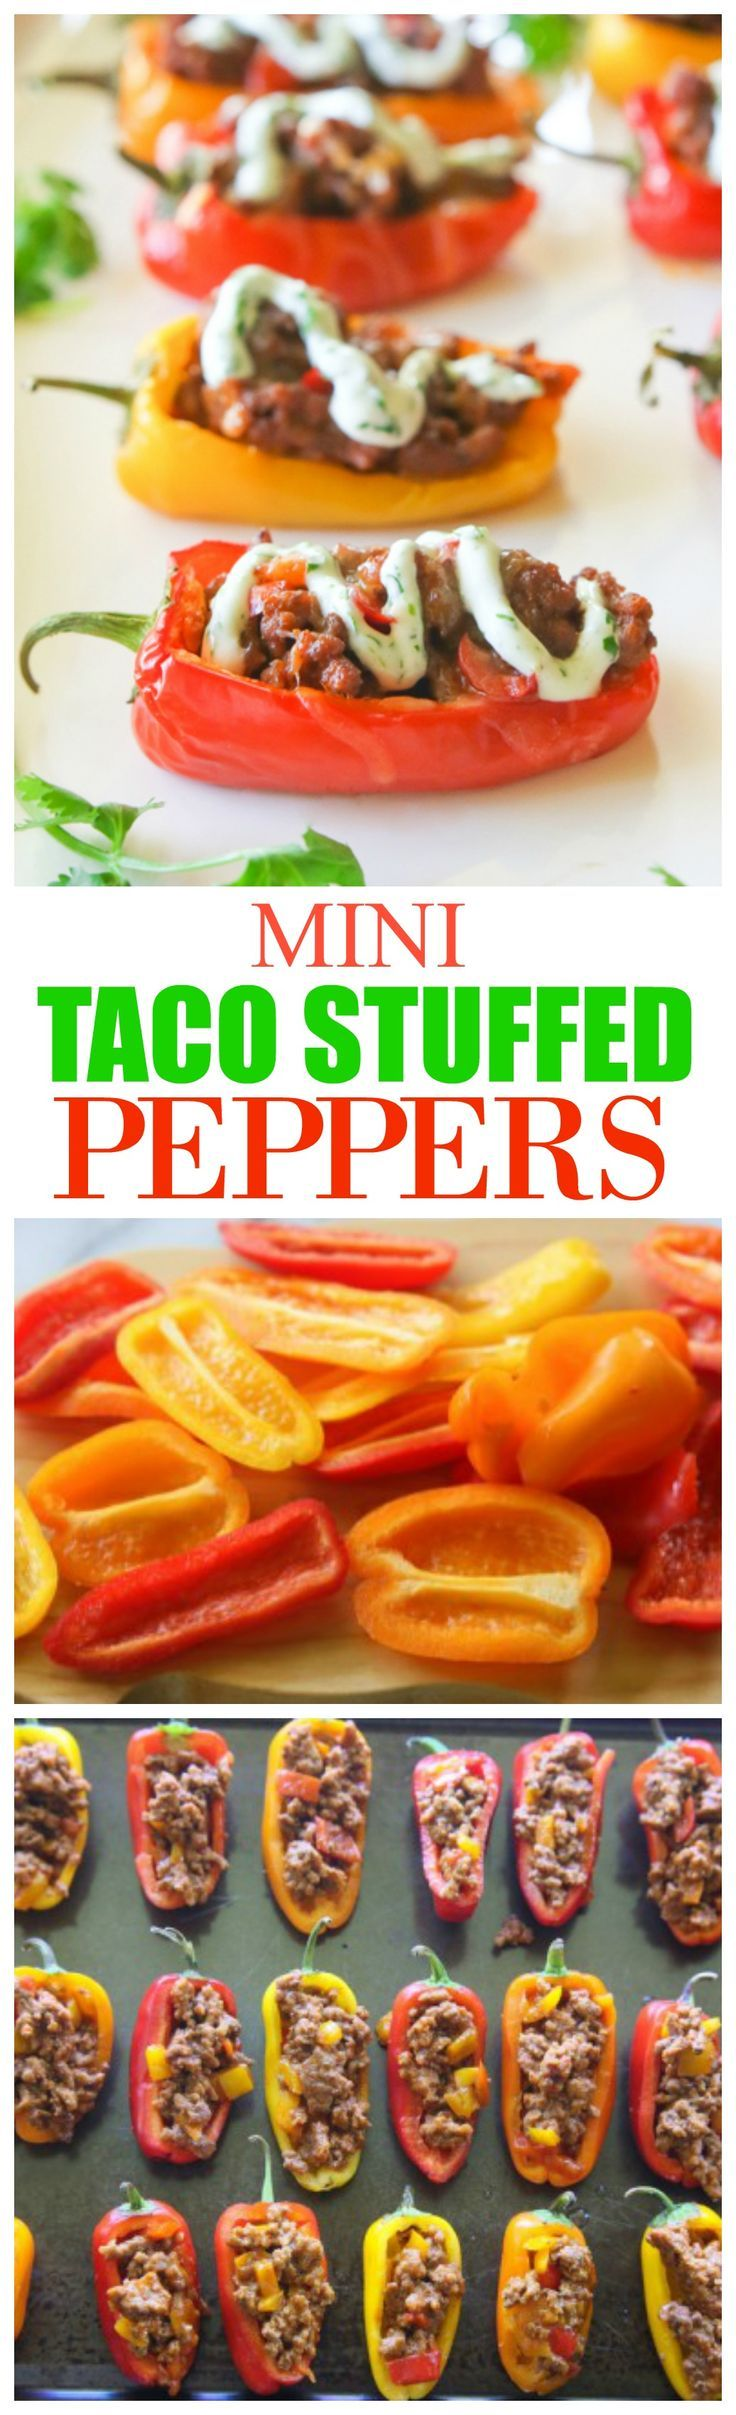 Mini Taco Stuffed Peppers - mini bell peppers stuffed with taco meat and drizzled with a cilantro cream sauce. http://the-girl-who-ate-everything.com